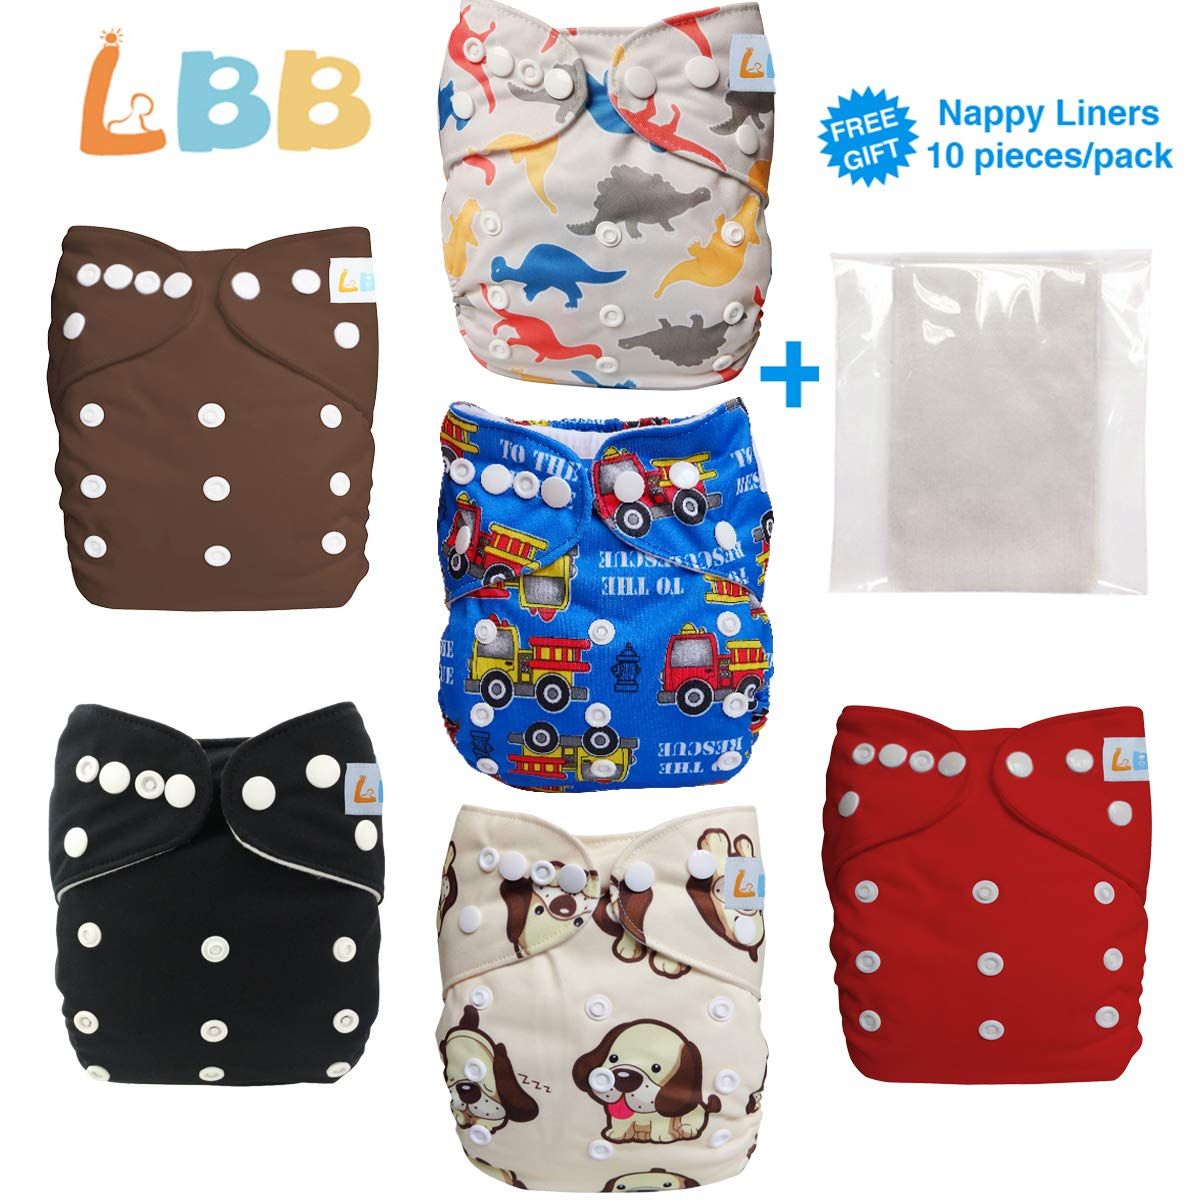 6 pcs Aanimal One Size Reusable Baby Cloth Pocket Diapers 6 Inserts